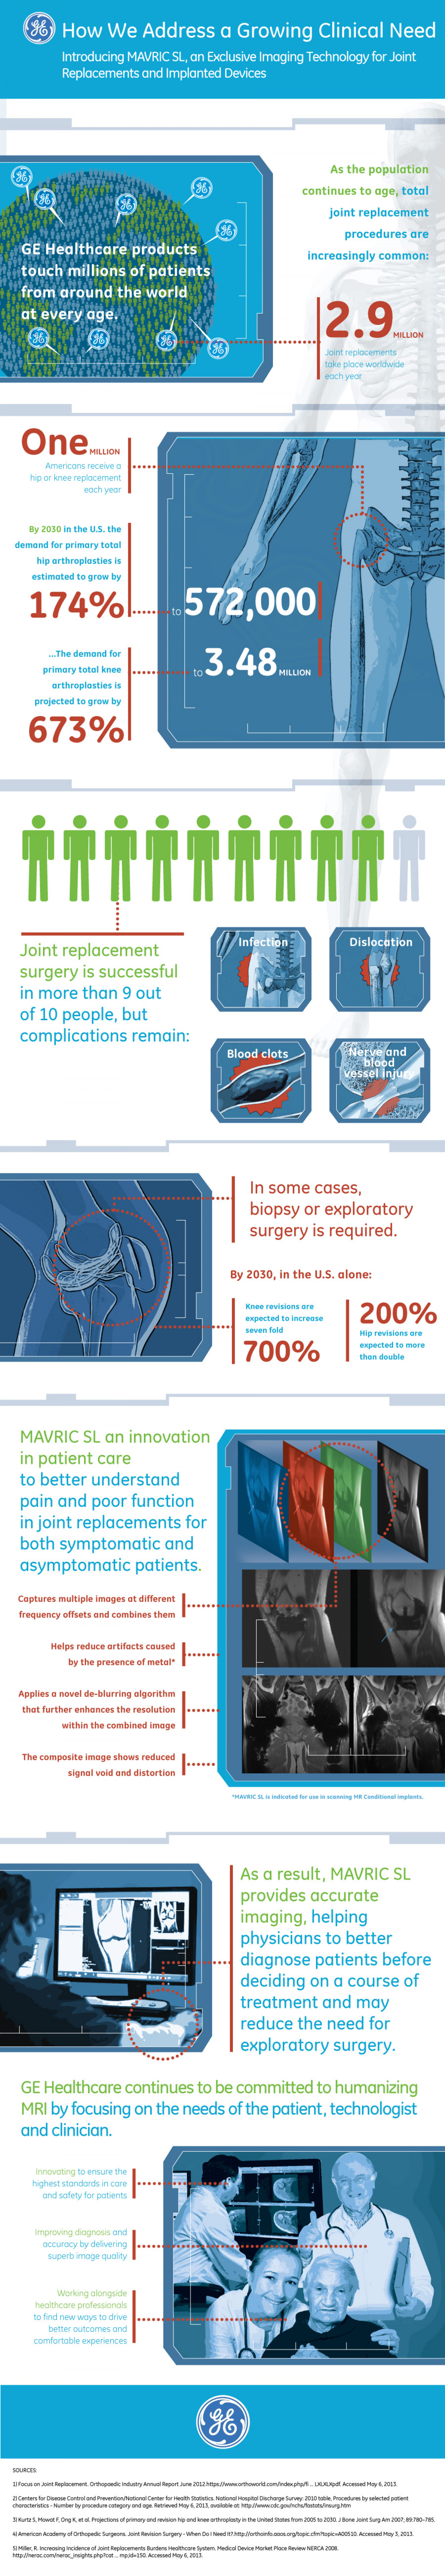 Introducing MAVRIC SL Infographic